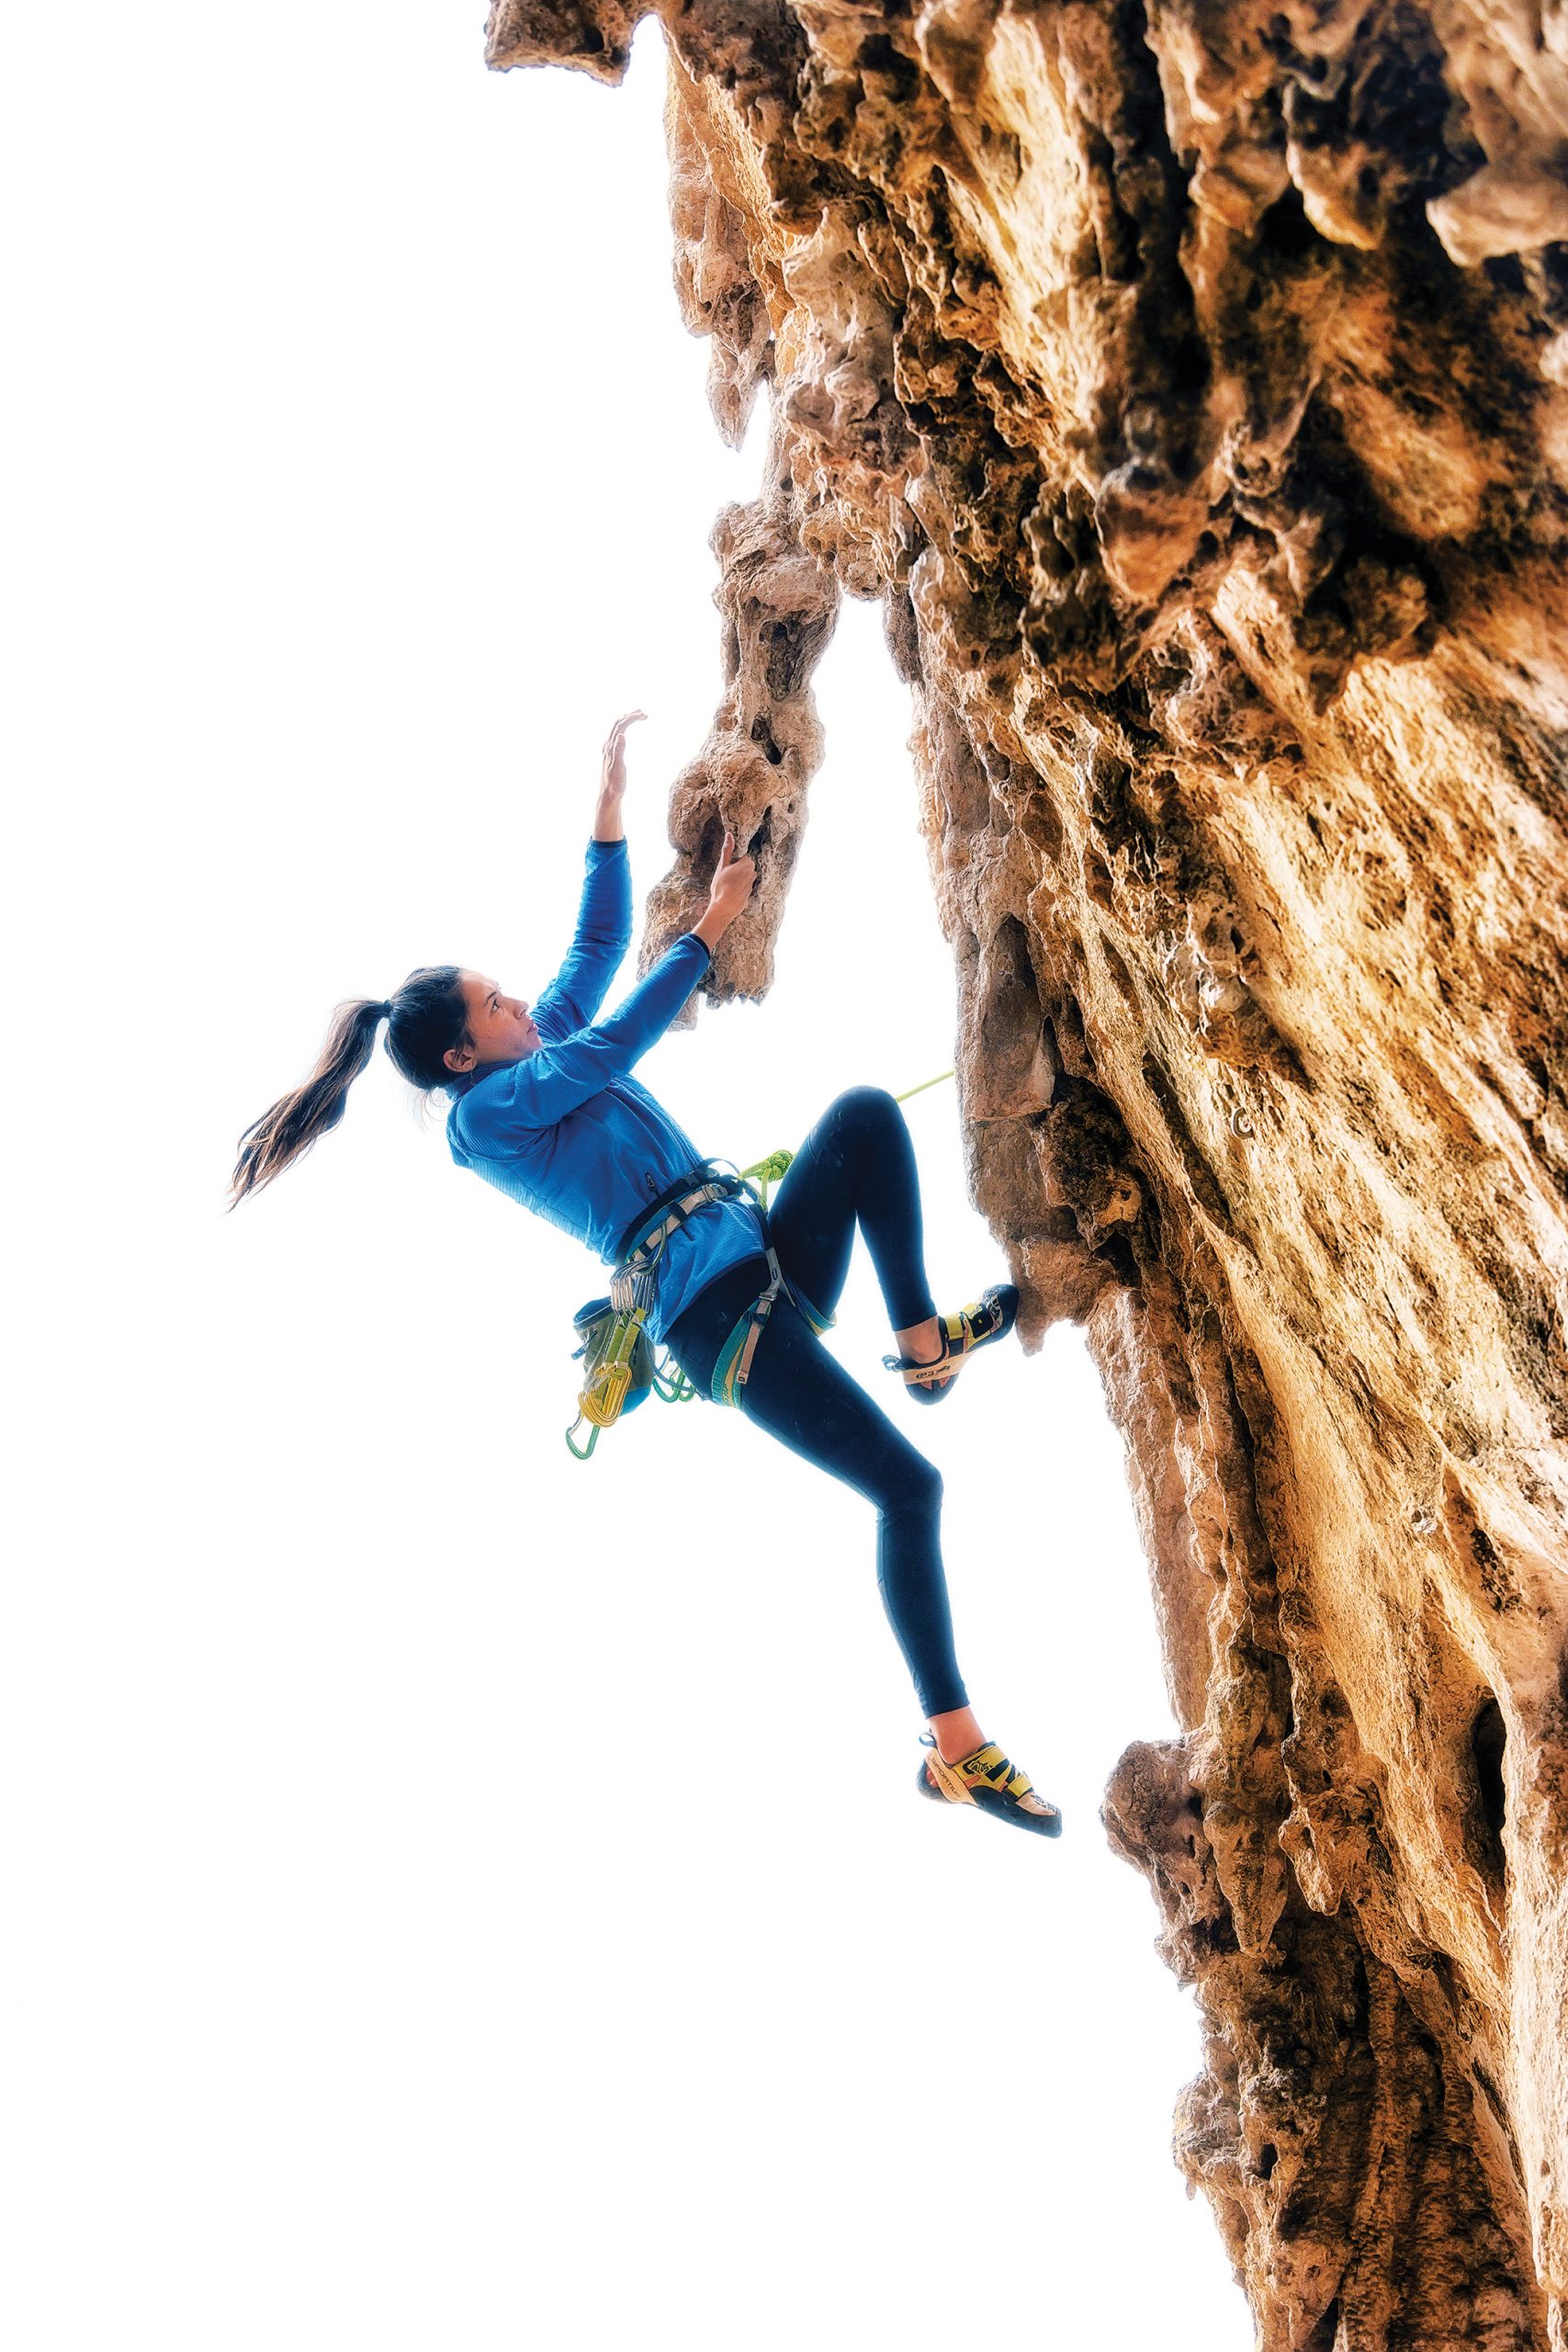 Palms warms up on <em>Baldassarre</em> (5.11a), a moderate in the Grotta del Cavallo. Photo: Jeff Rueppel.